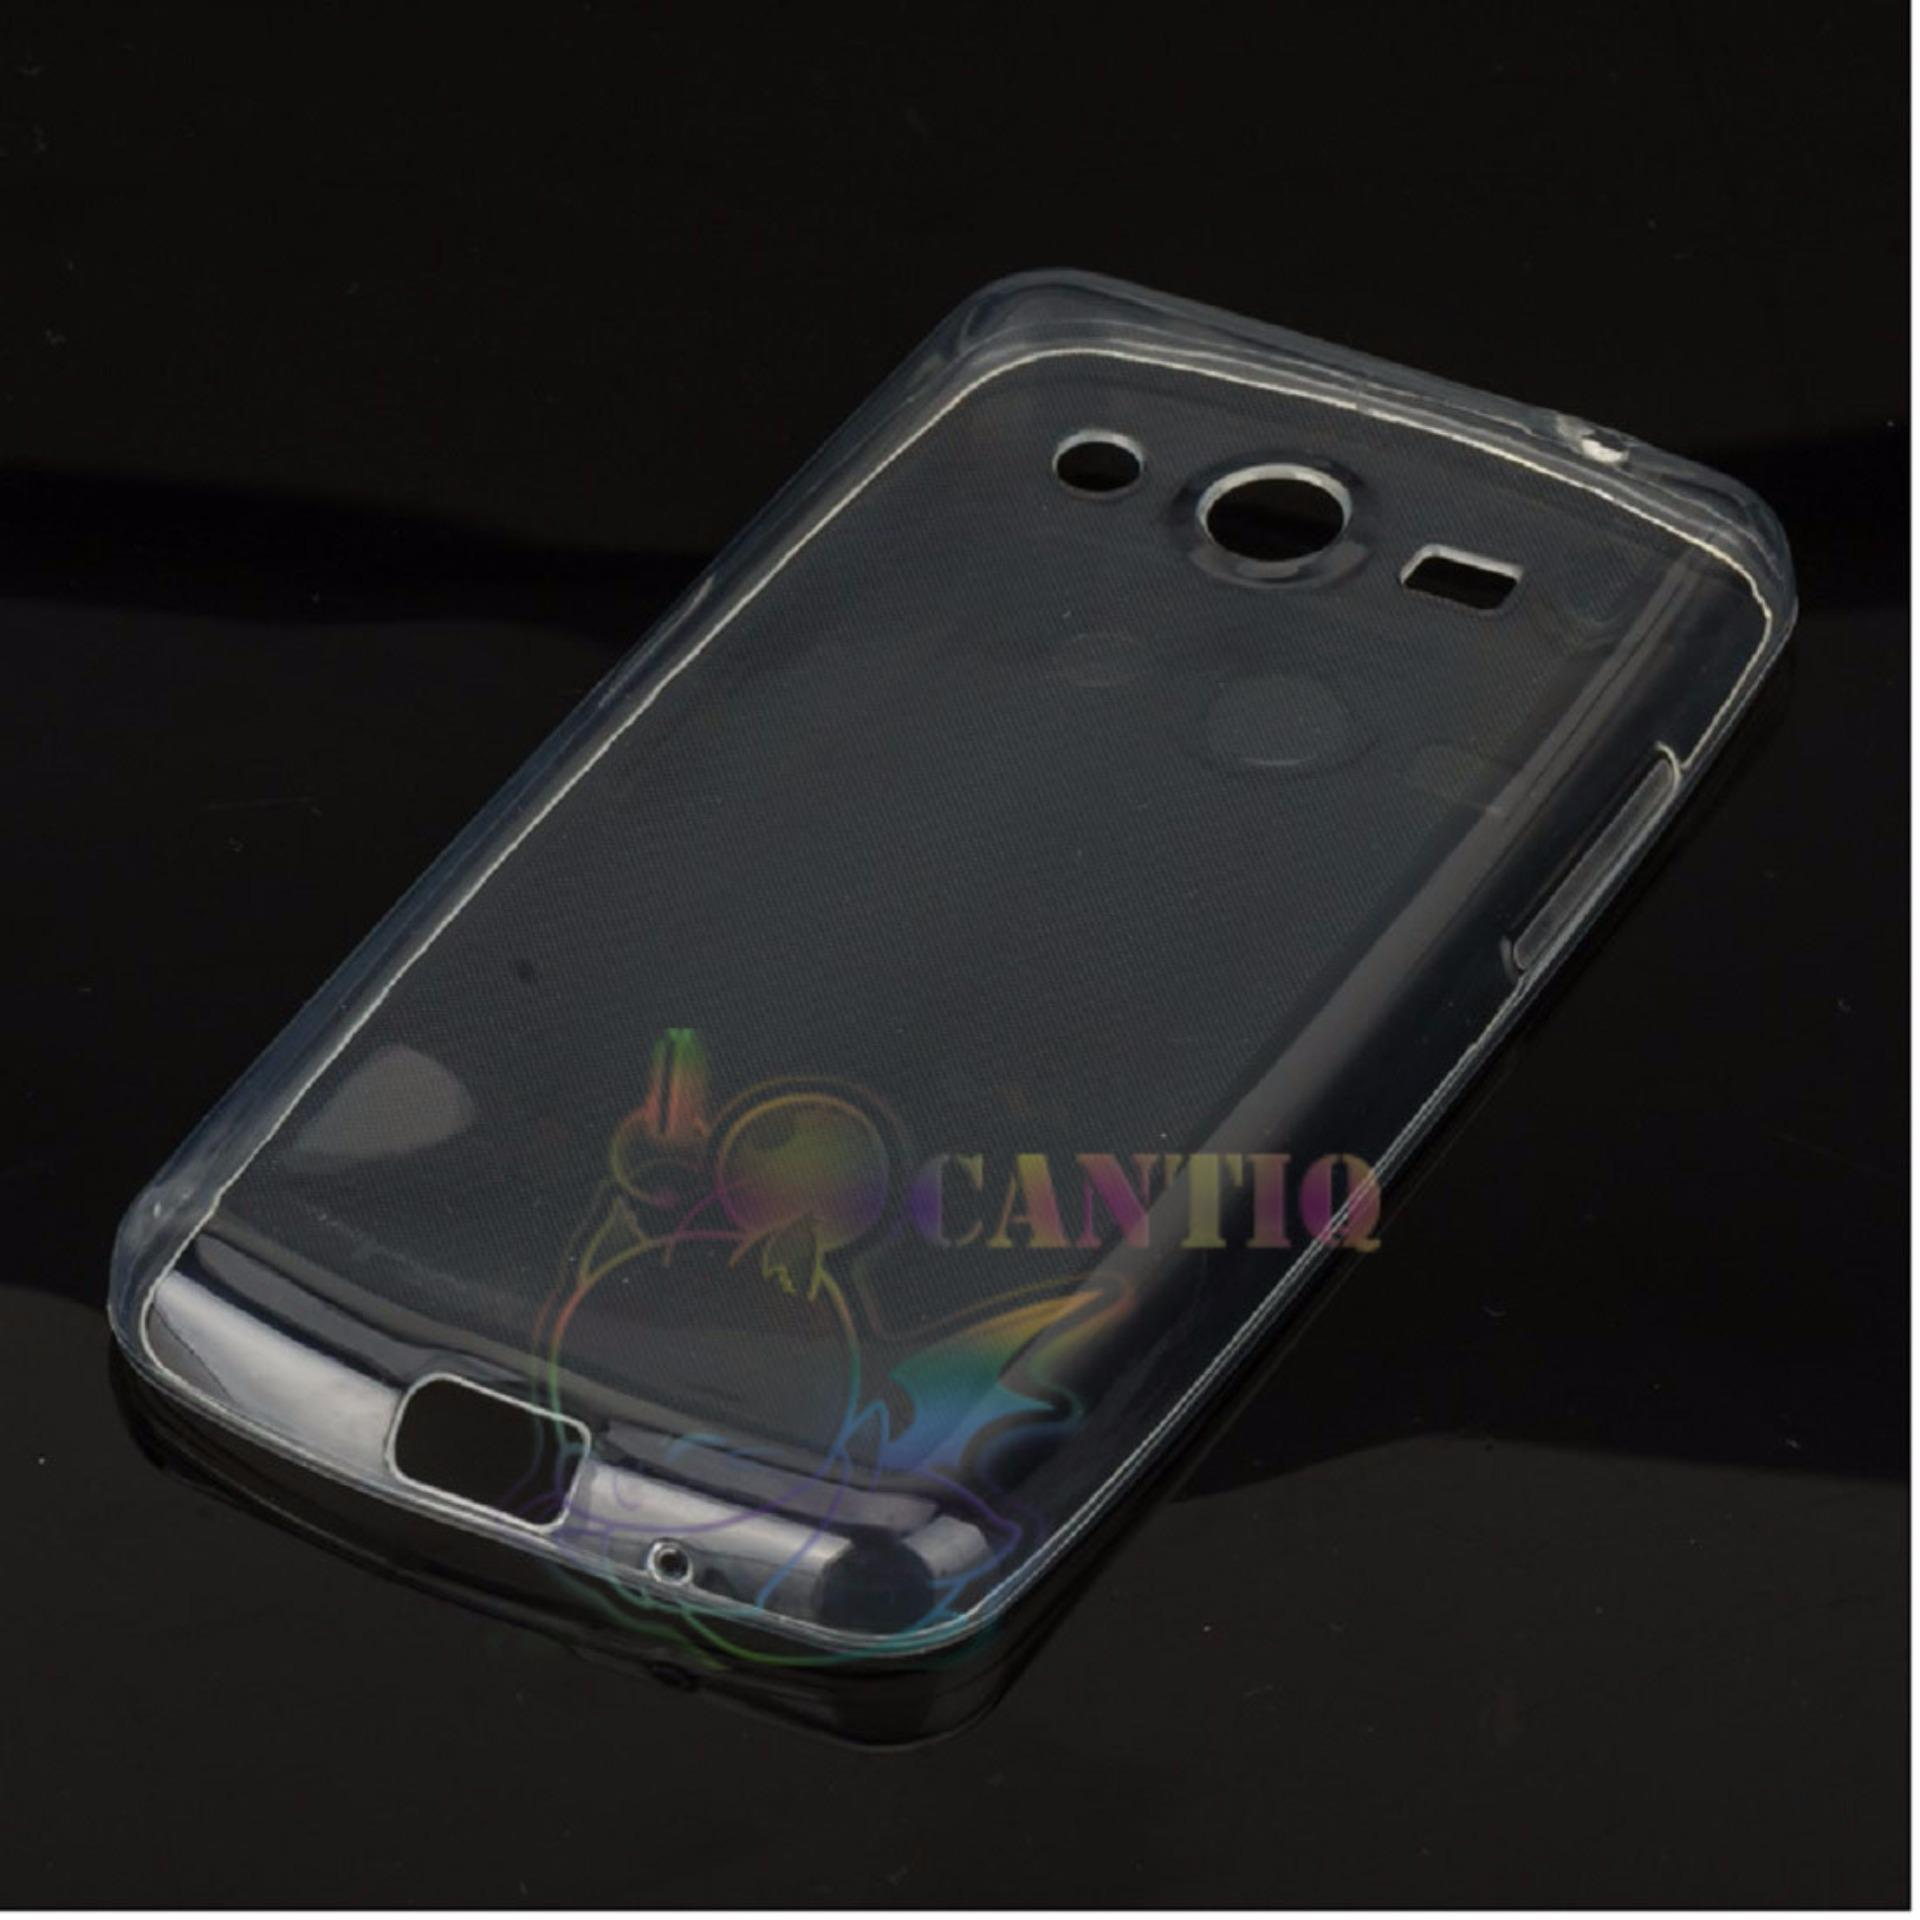 Ultrathin For Andromax B Ultrathin Jelly Air Case 03mm Soft Backcase Source · QCF Ultrathin Case